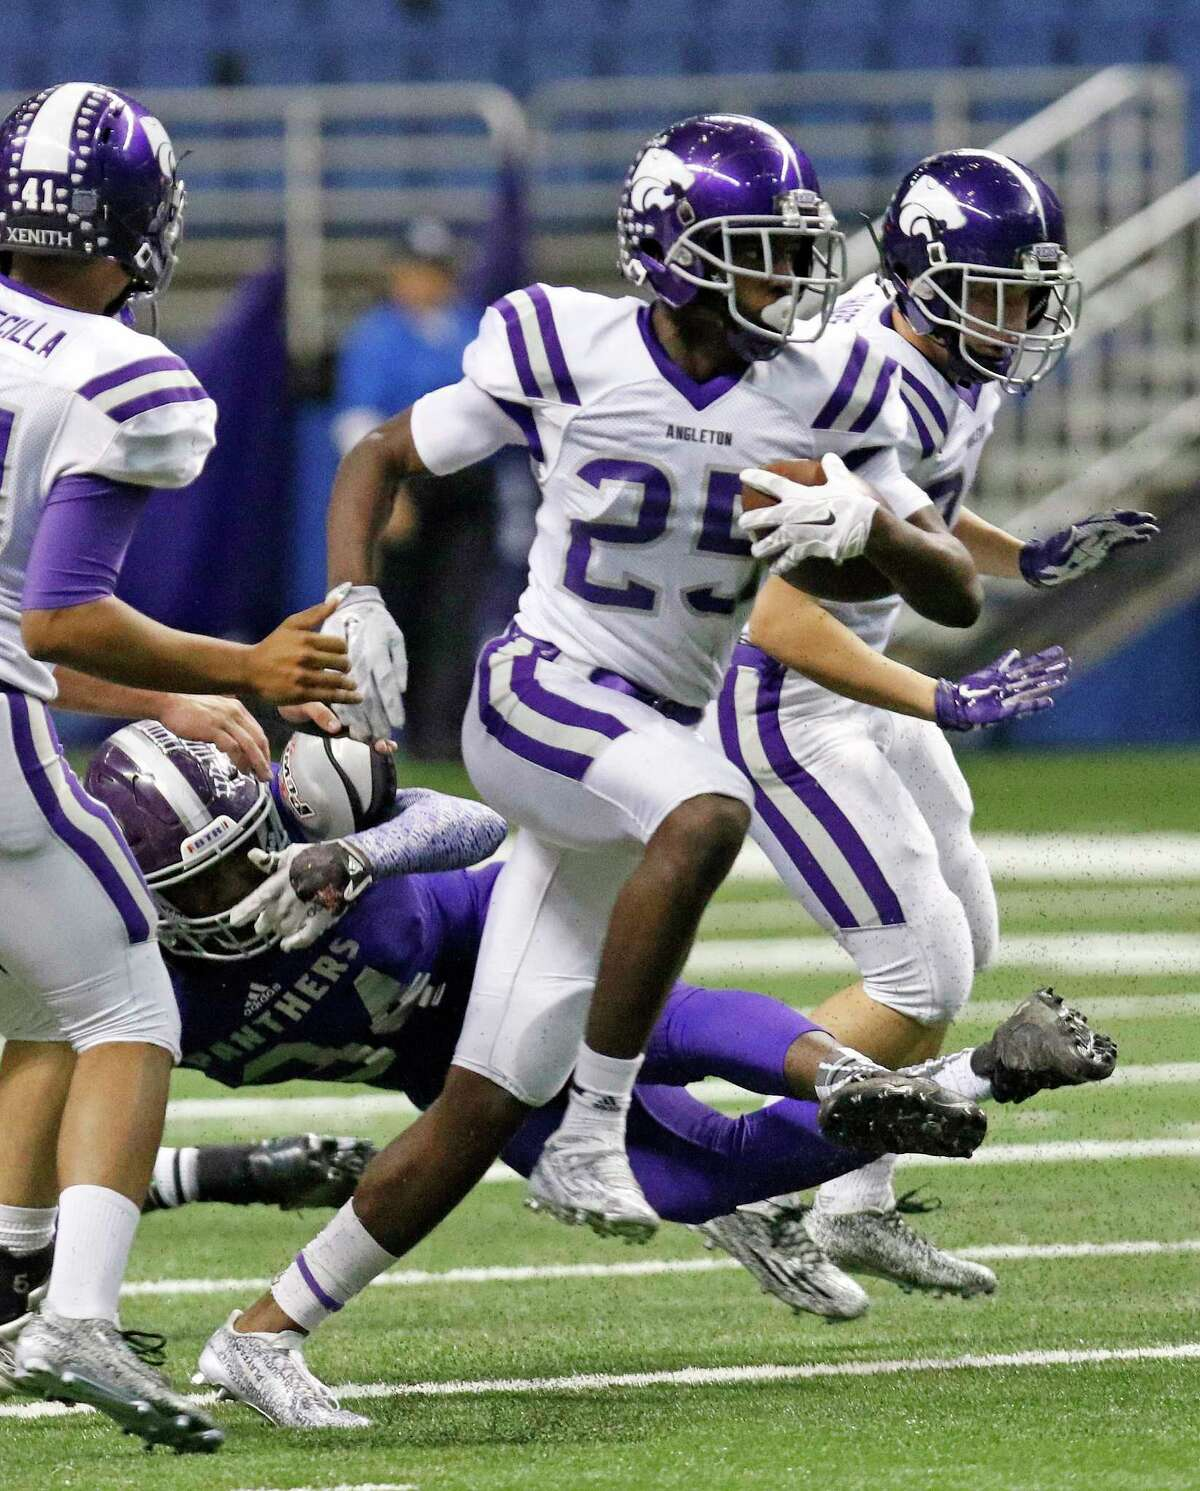 Angleton's B.J. Foster, here running for yardage in the state playoffs, likely will be converted into a safety at UT.